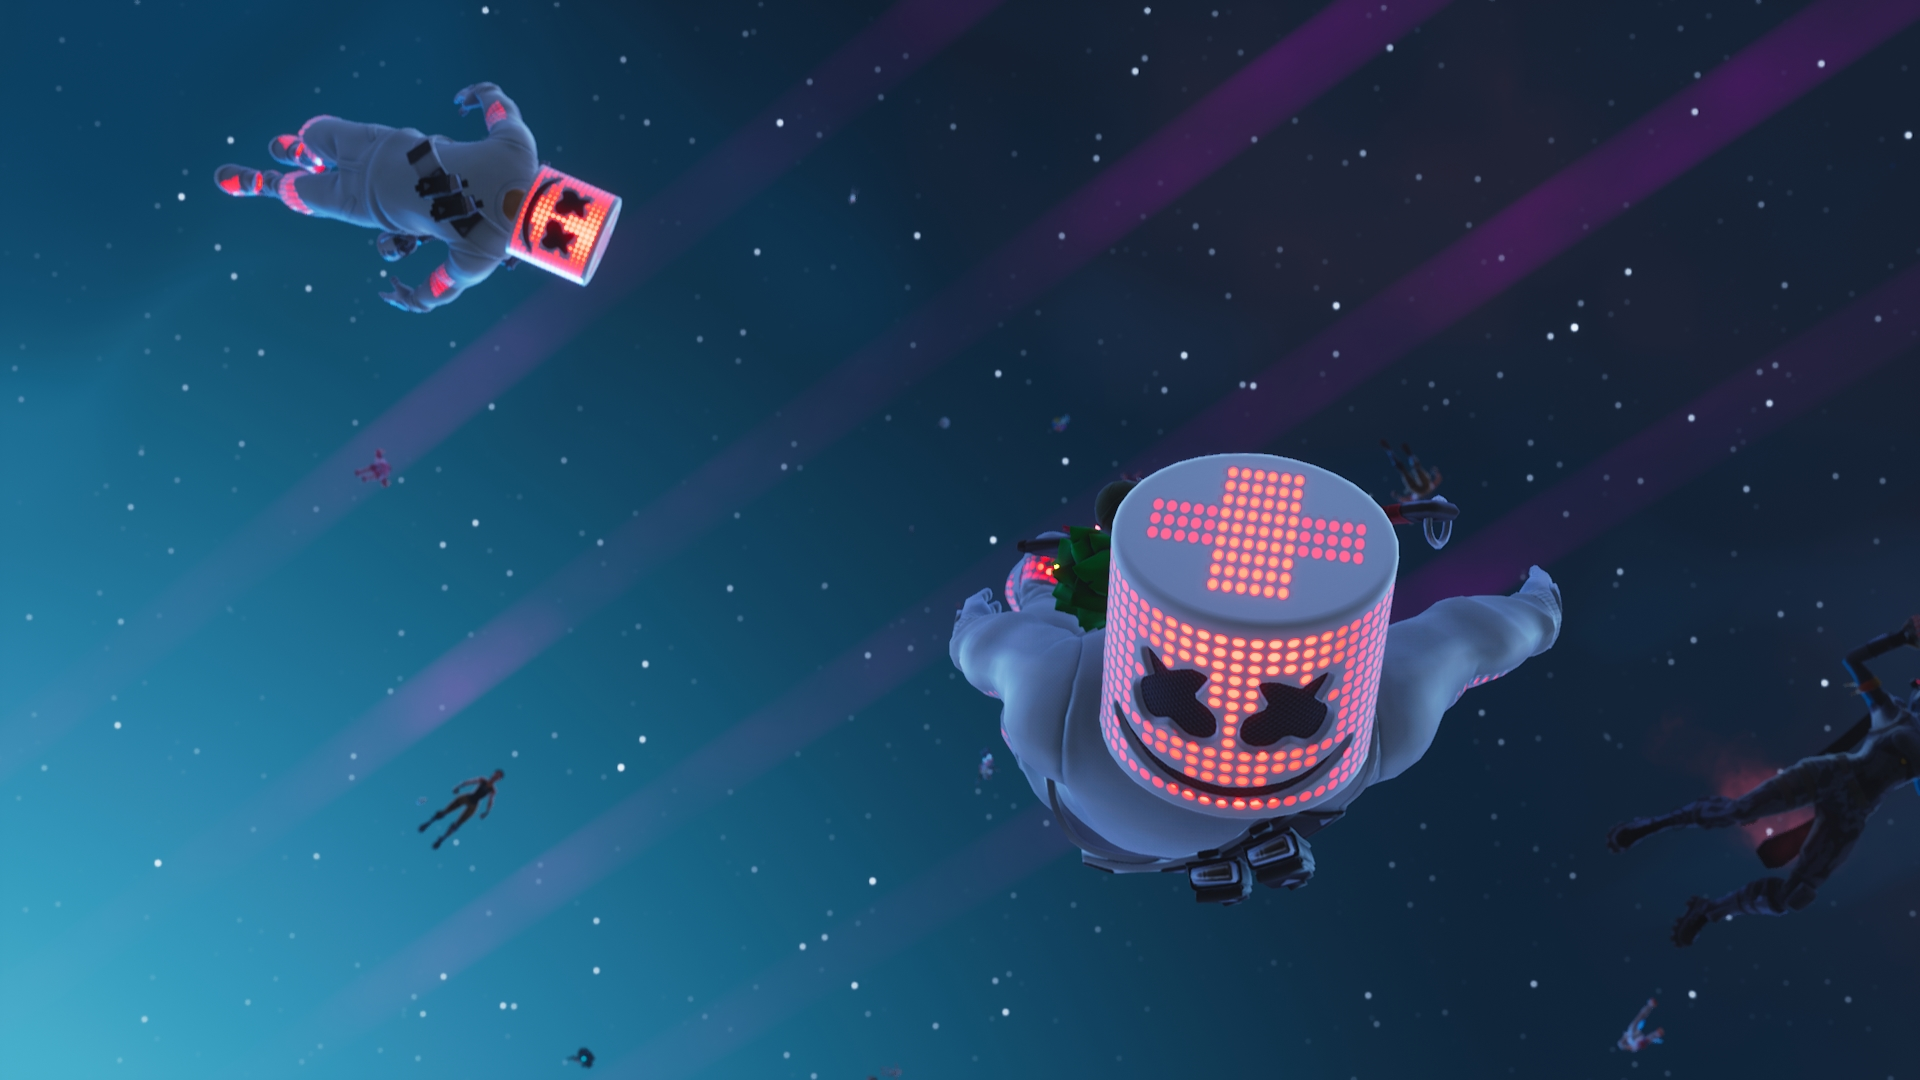 Marshmello Fortnite Hd Games 4k Wallpapers Images Backgrounds Photos And Pictures